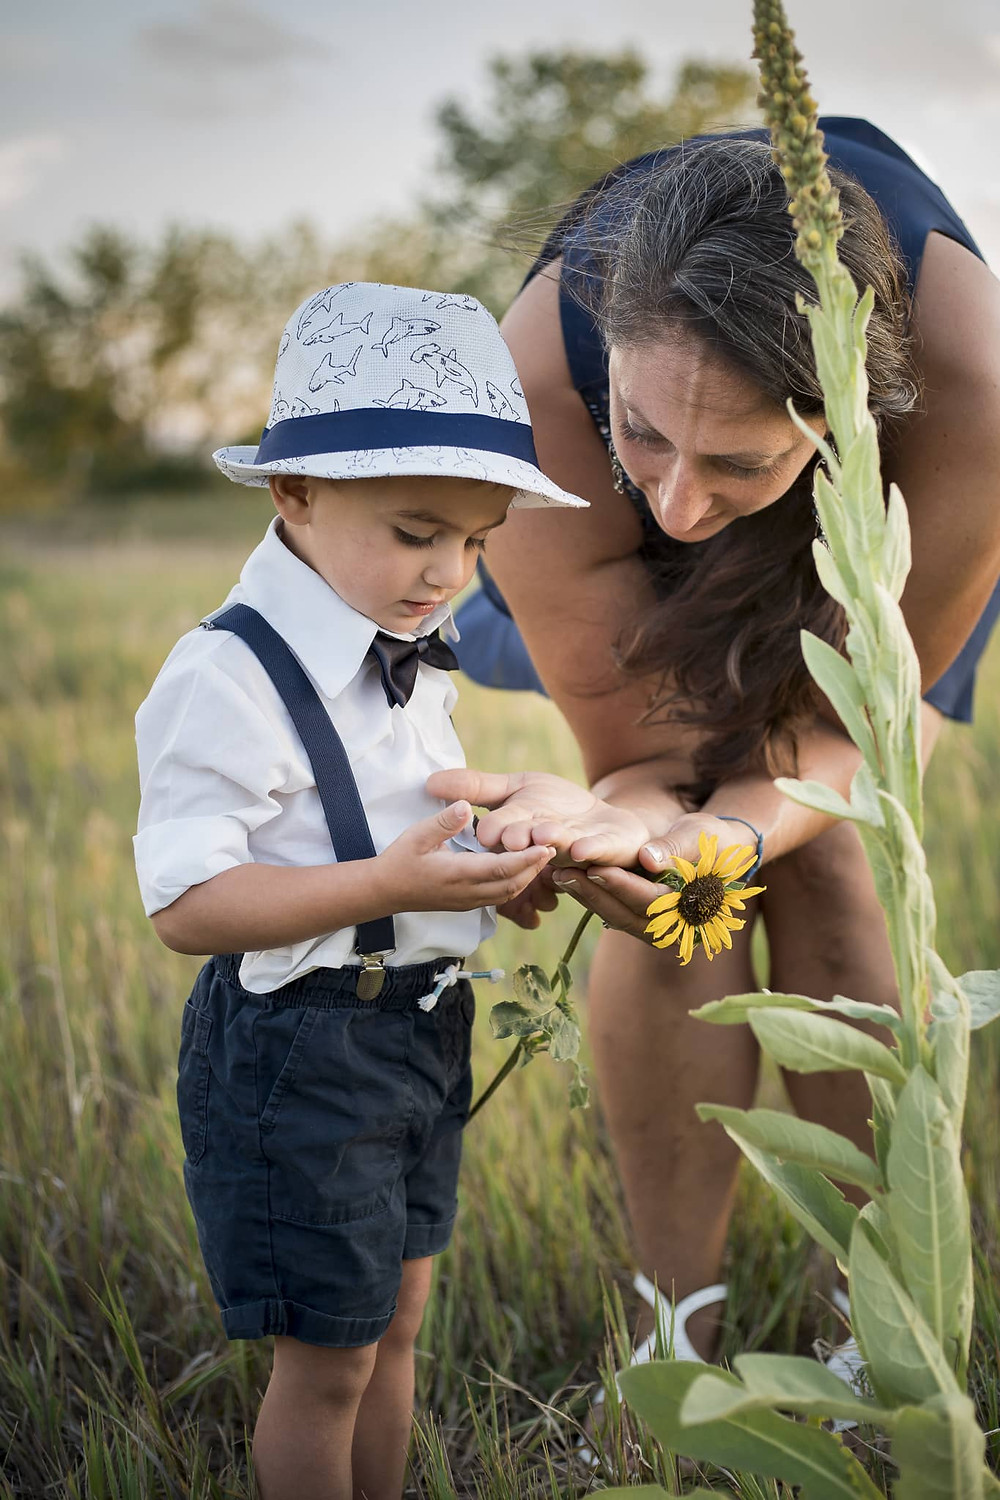 Mom teaches son about flowers and seeds in Lakewood, Colorado